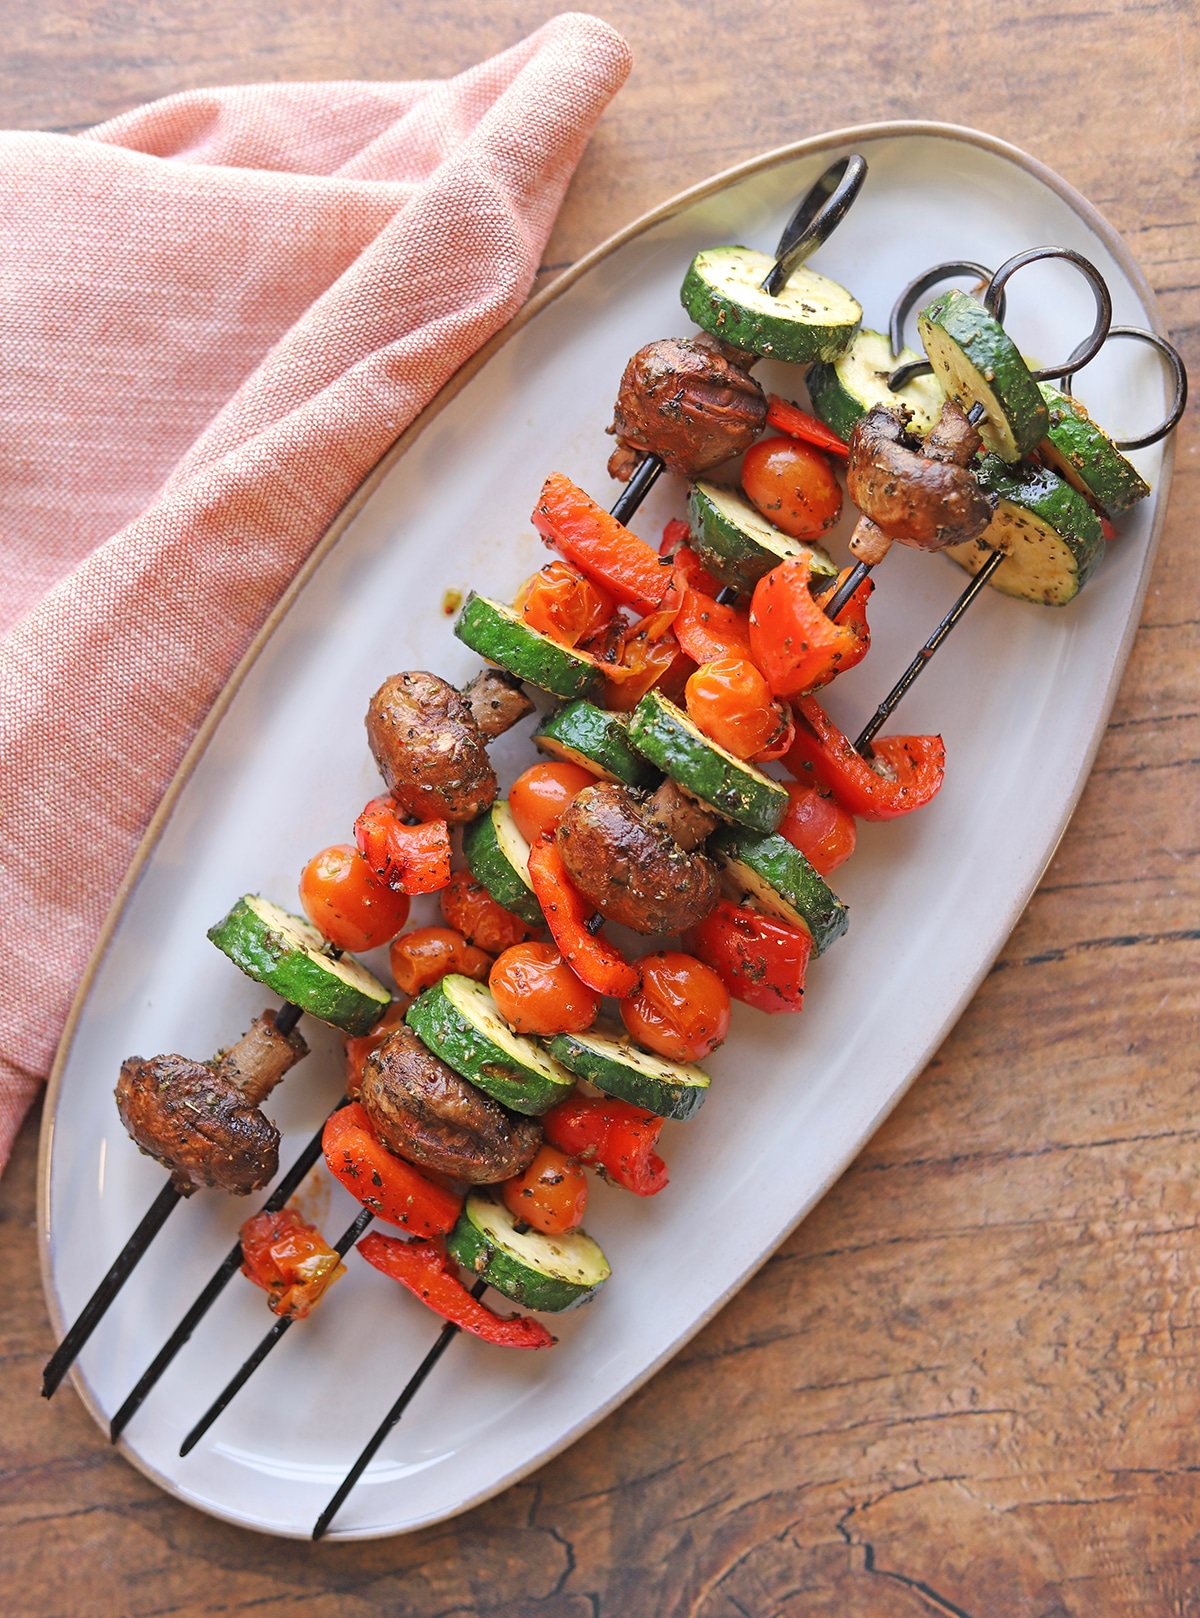 Grilled vegetable skewers on platter with napkin.